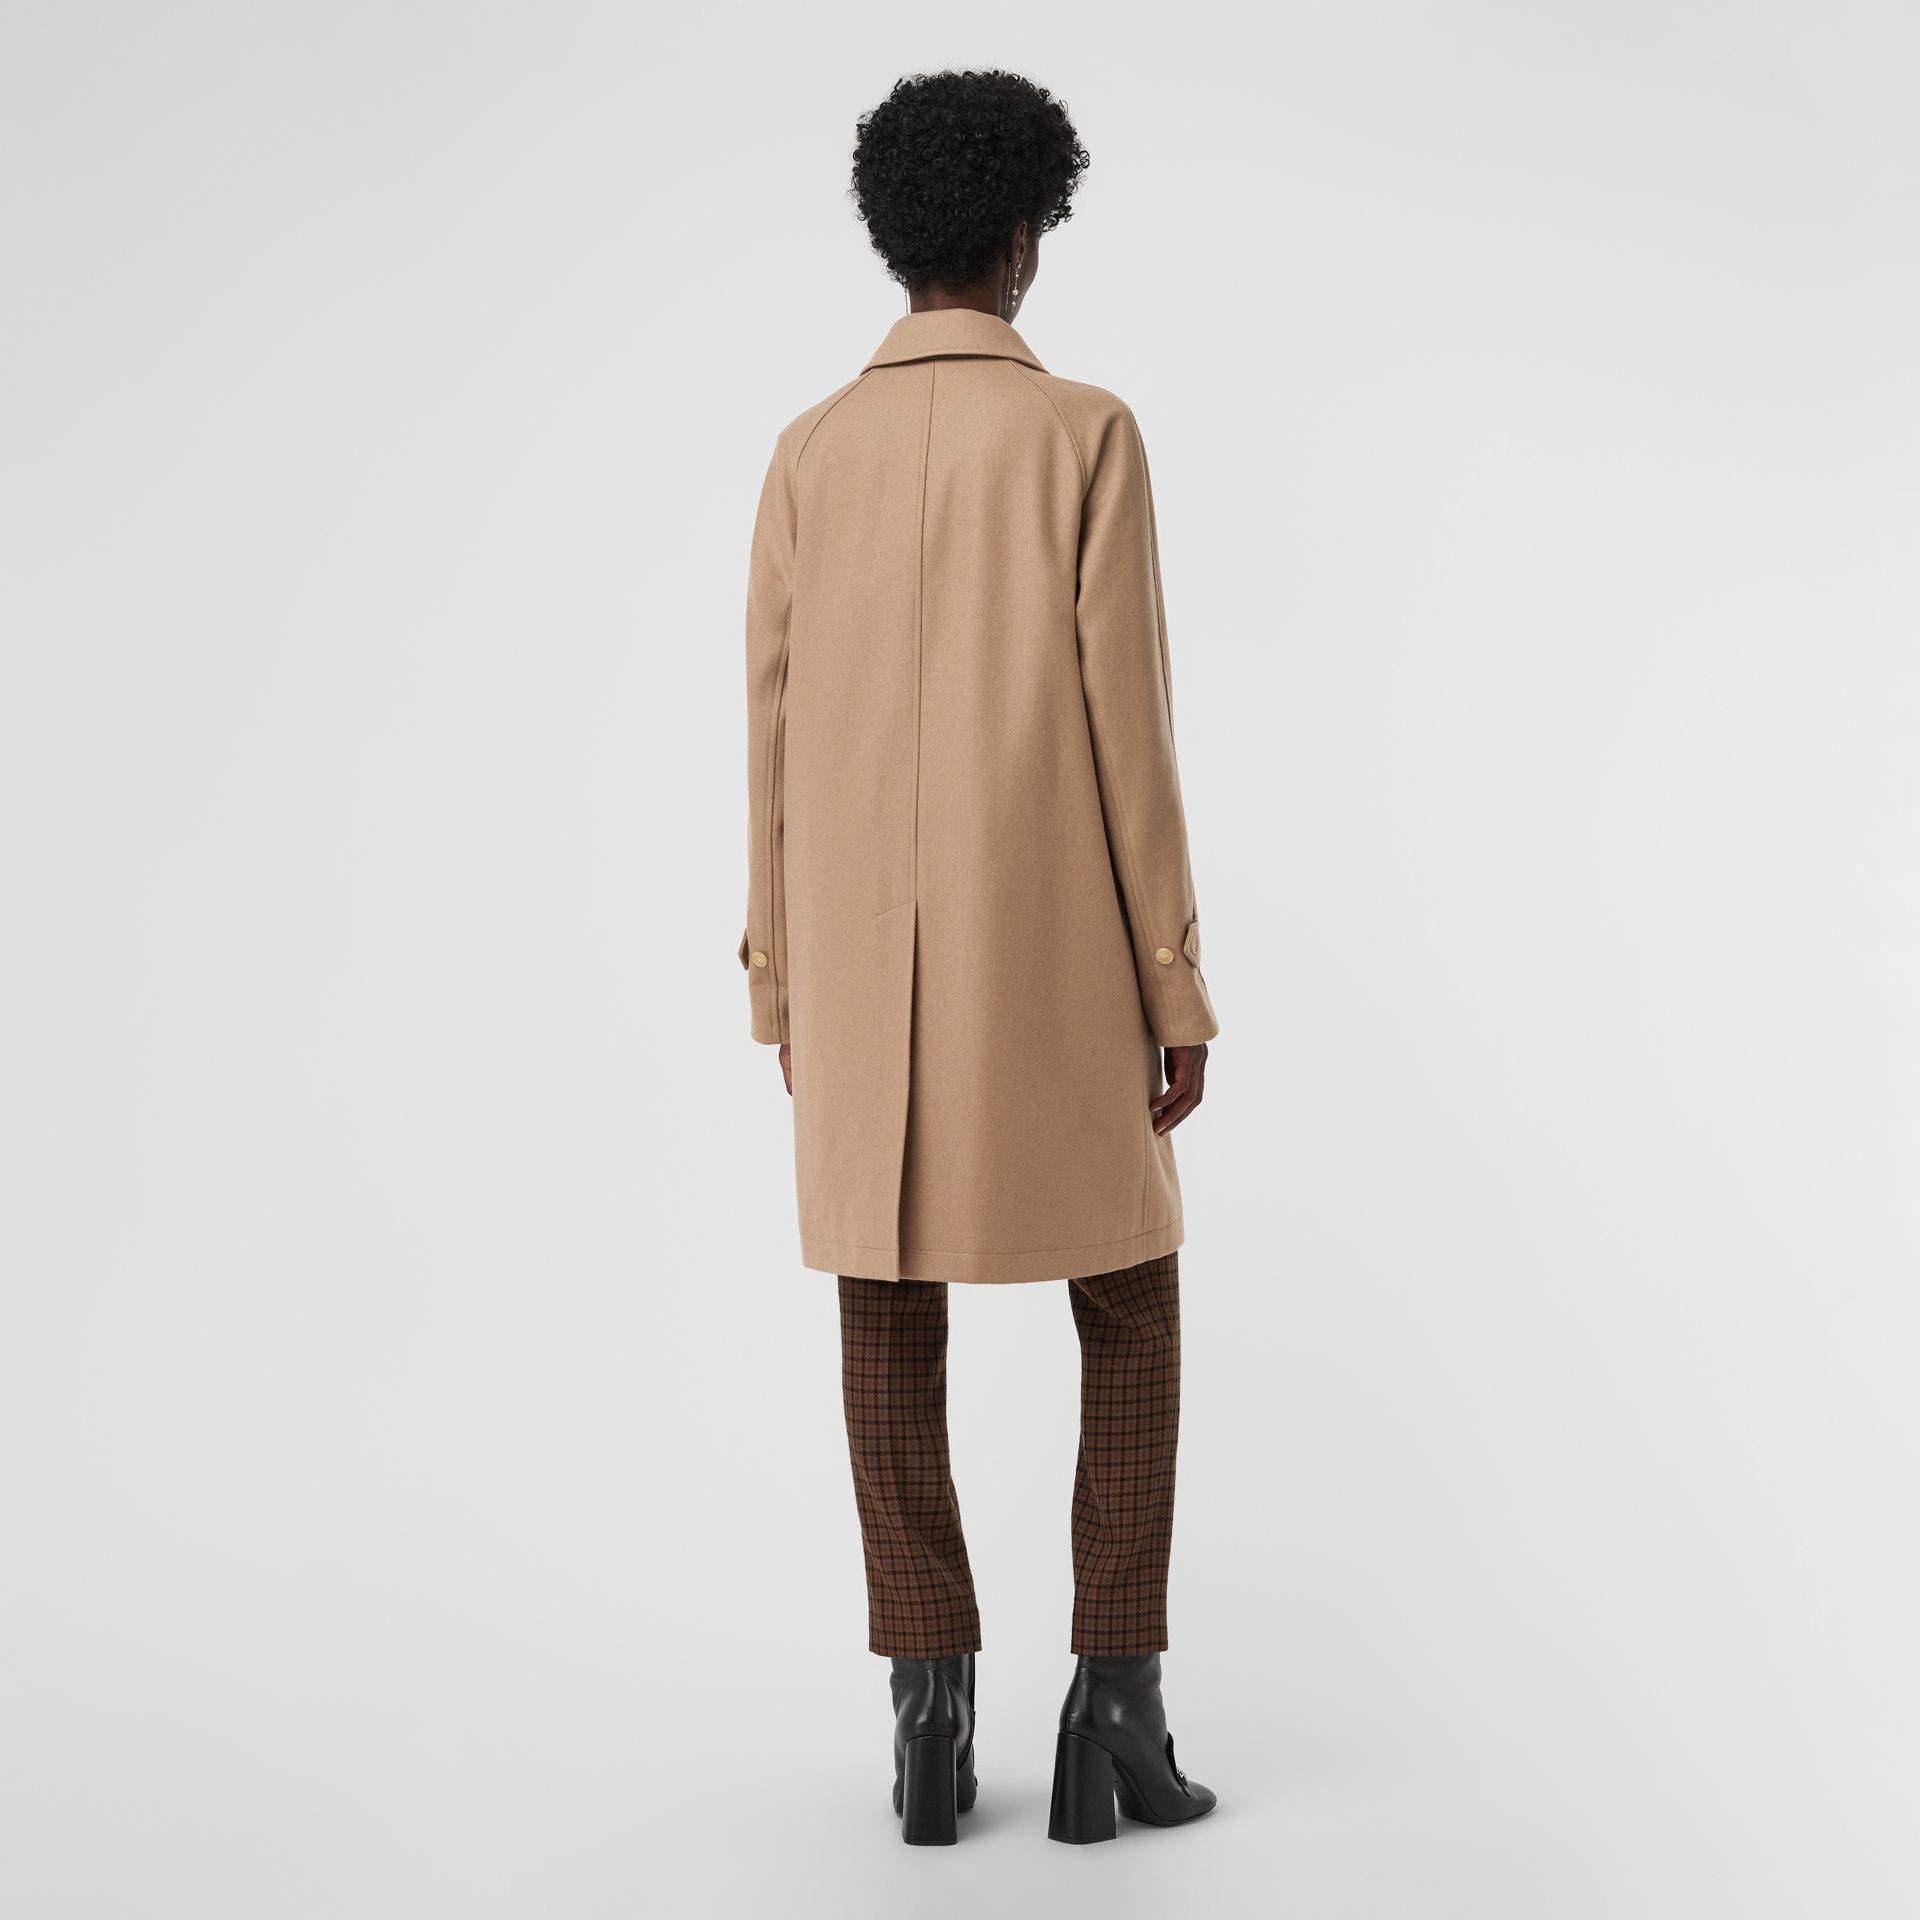 Cashmere Car Coat in Camel - Women | Burberry Australia - gallery image 2